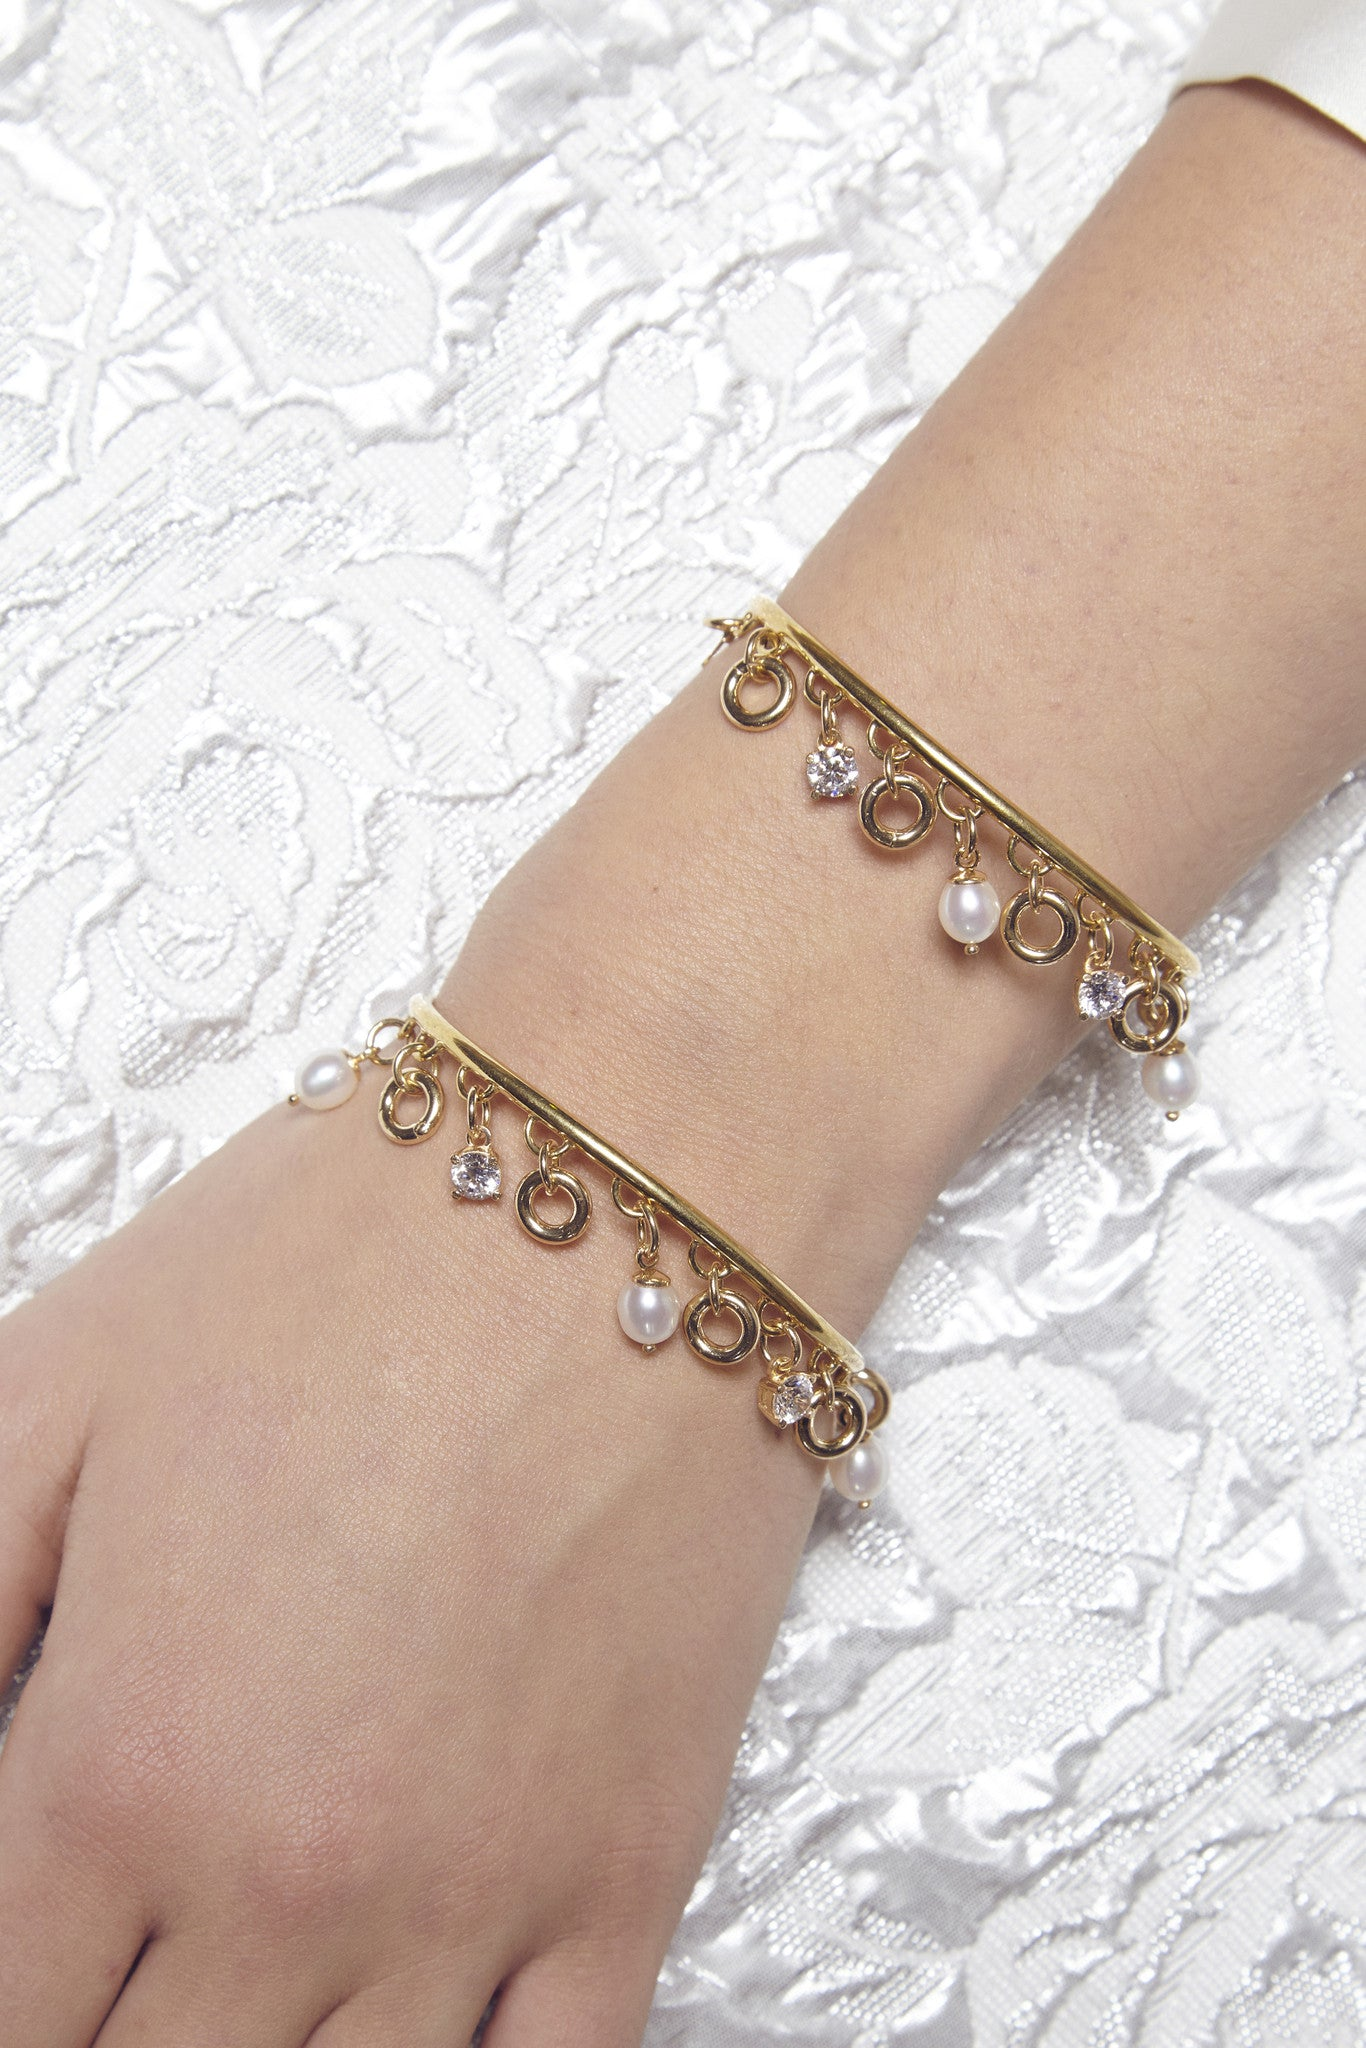 'PRINCESS OF PEARLS' CUFF BRACELET WITH PEARL CHARMS